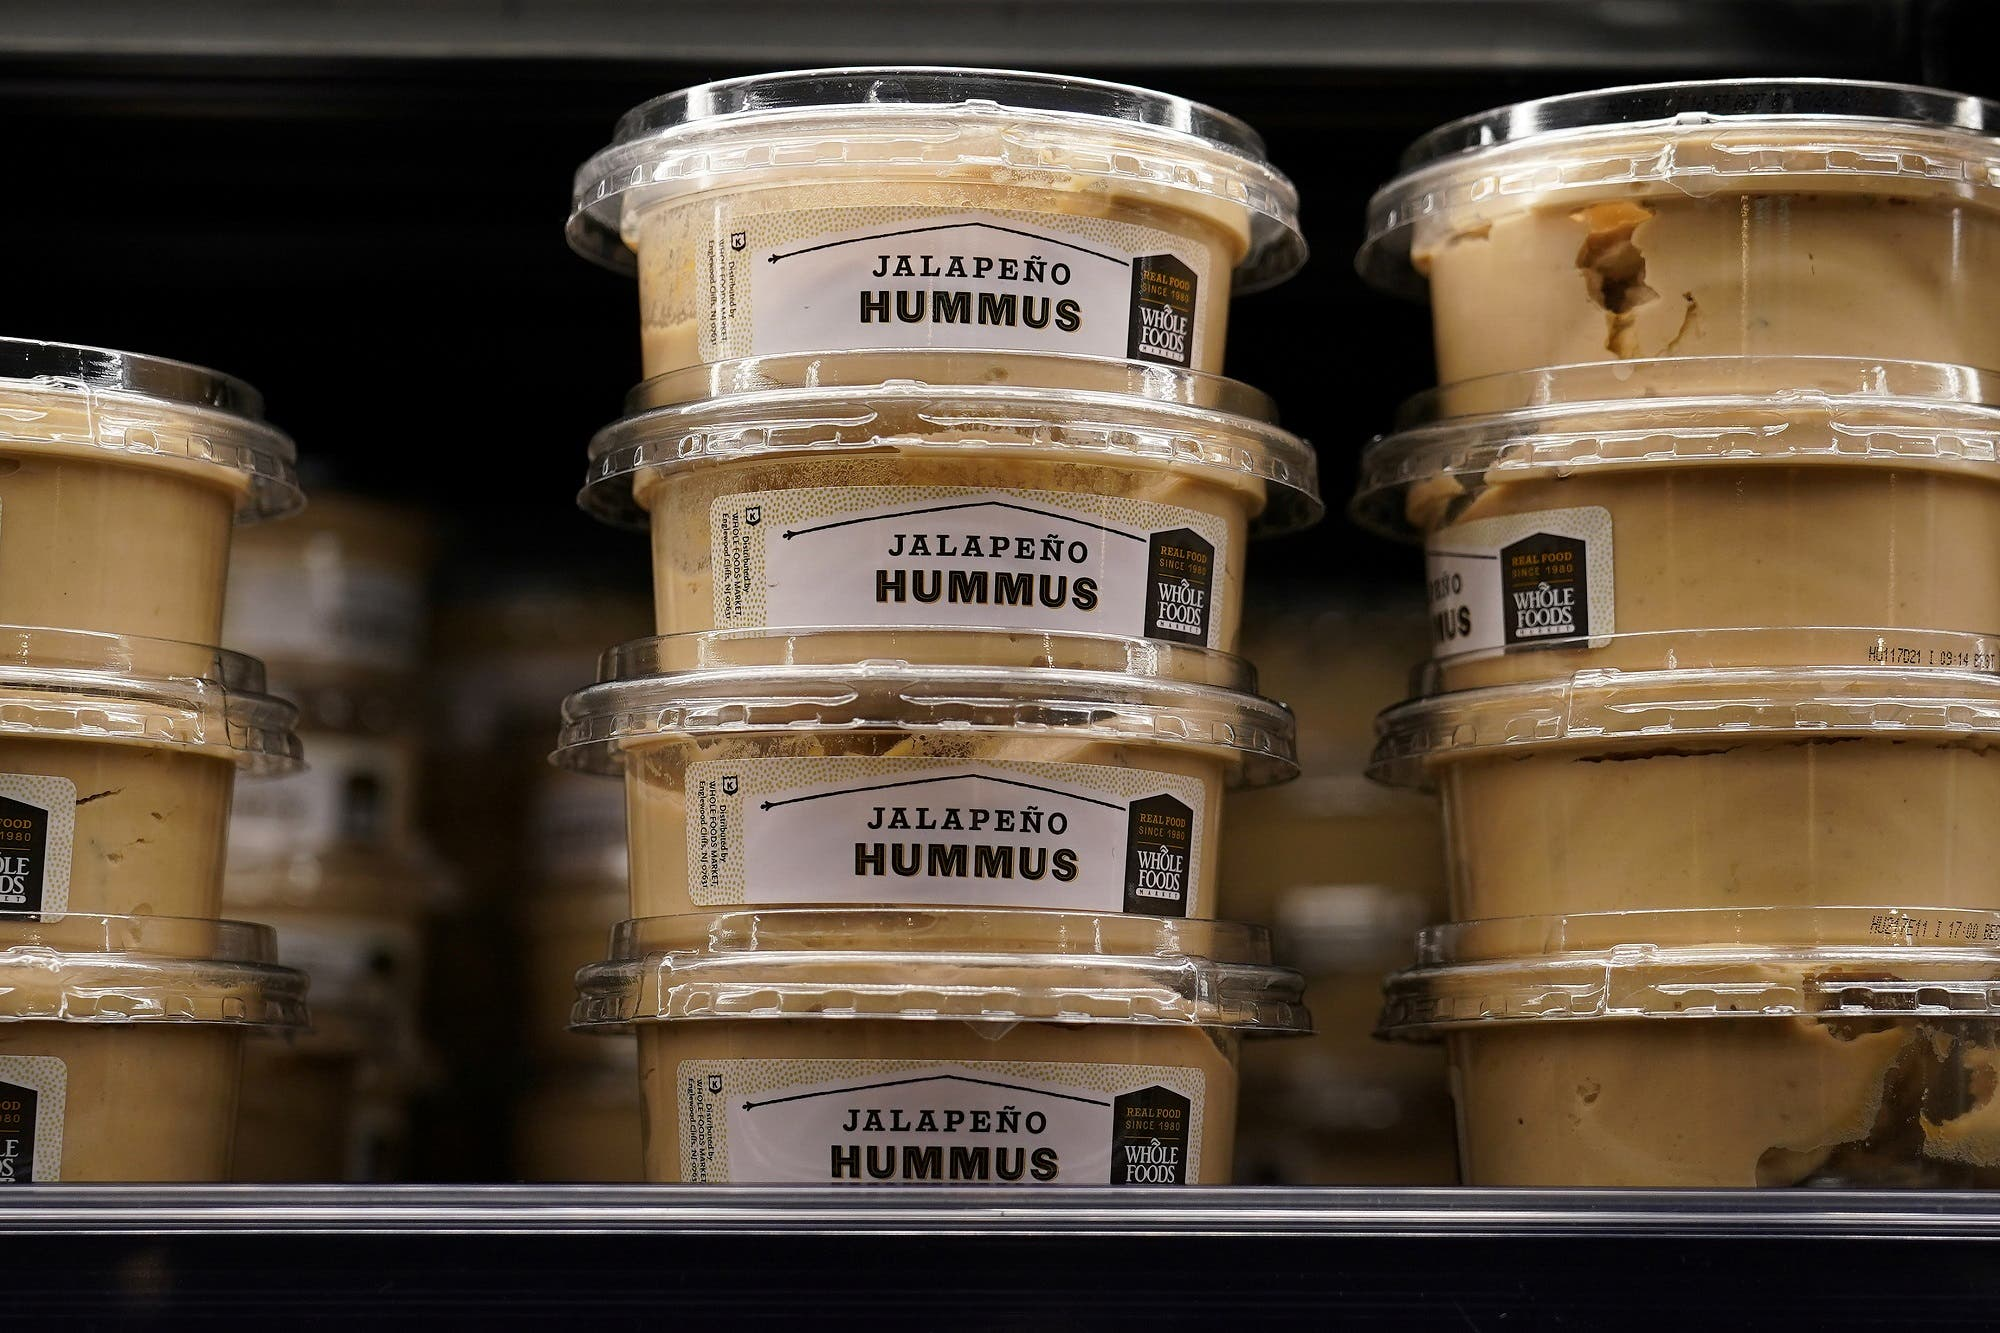 Hummus for sale is pictured inside a Whole Foods Market in the Manhattan borough of New York City, New York on June 16, 2017. (Reuters)